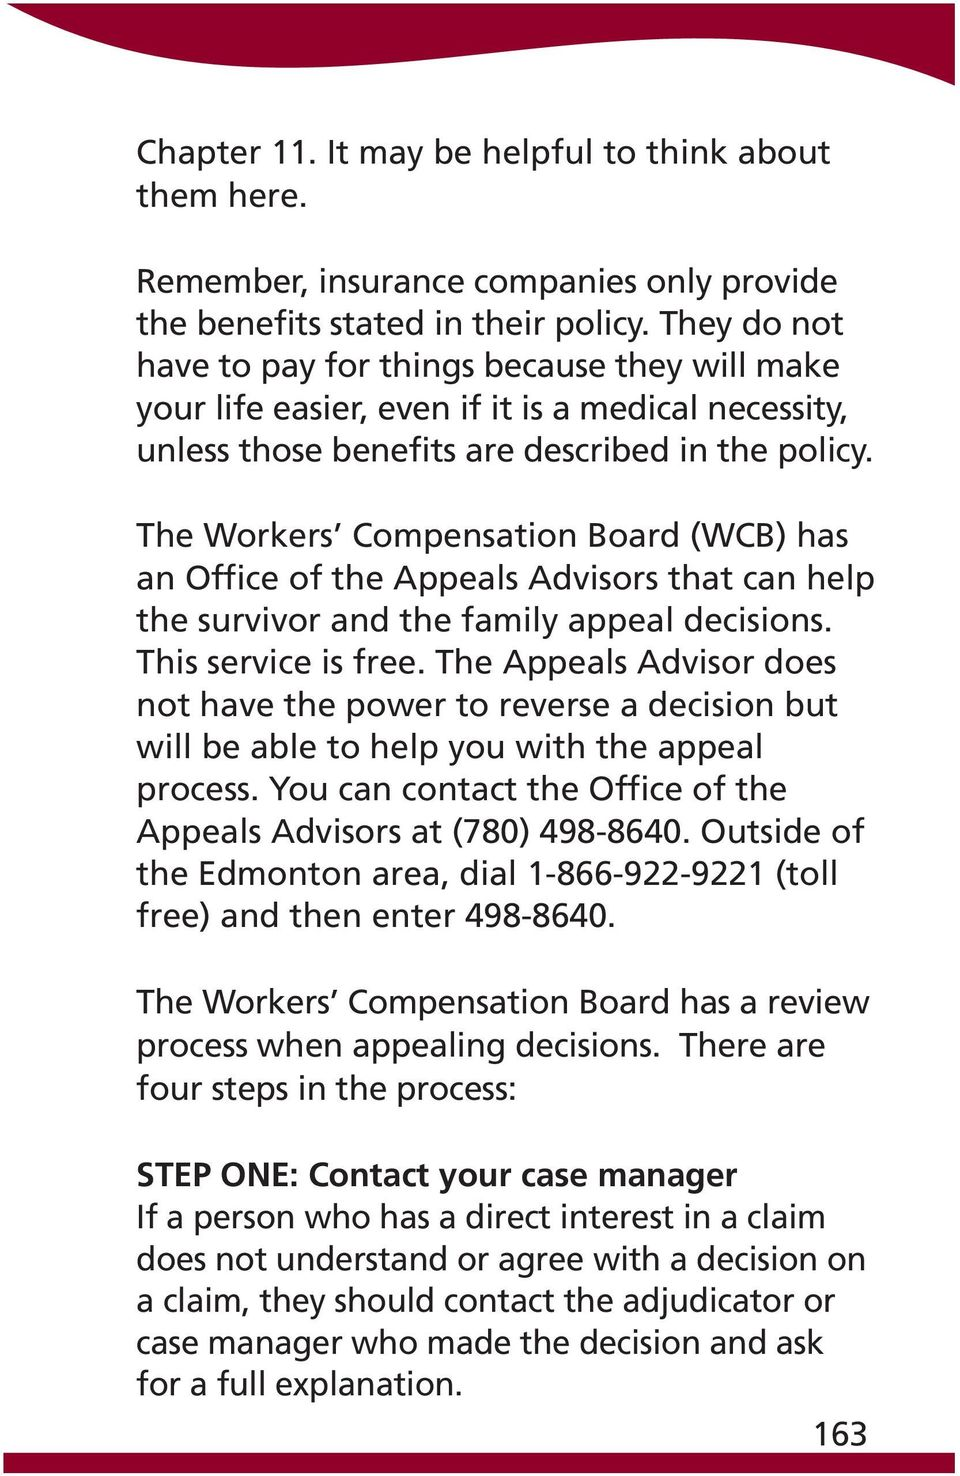 The Workers Compensation Board (WCB) has an Office of the Appeals Advisors that can help the survivor and the family appeal decisions. This service is free.